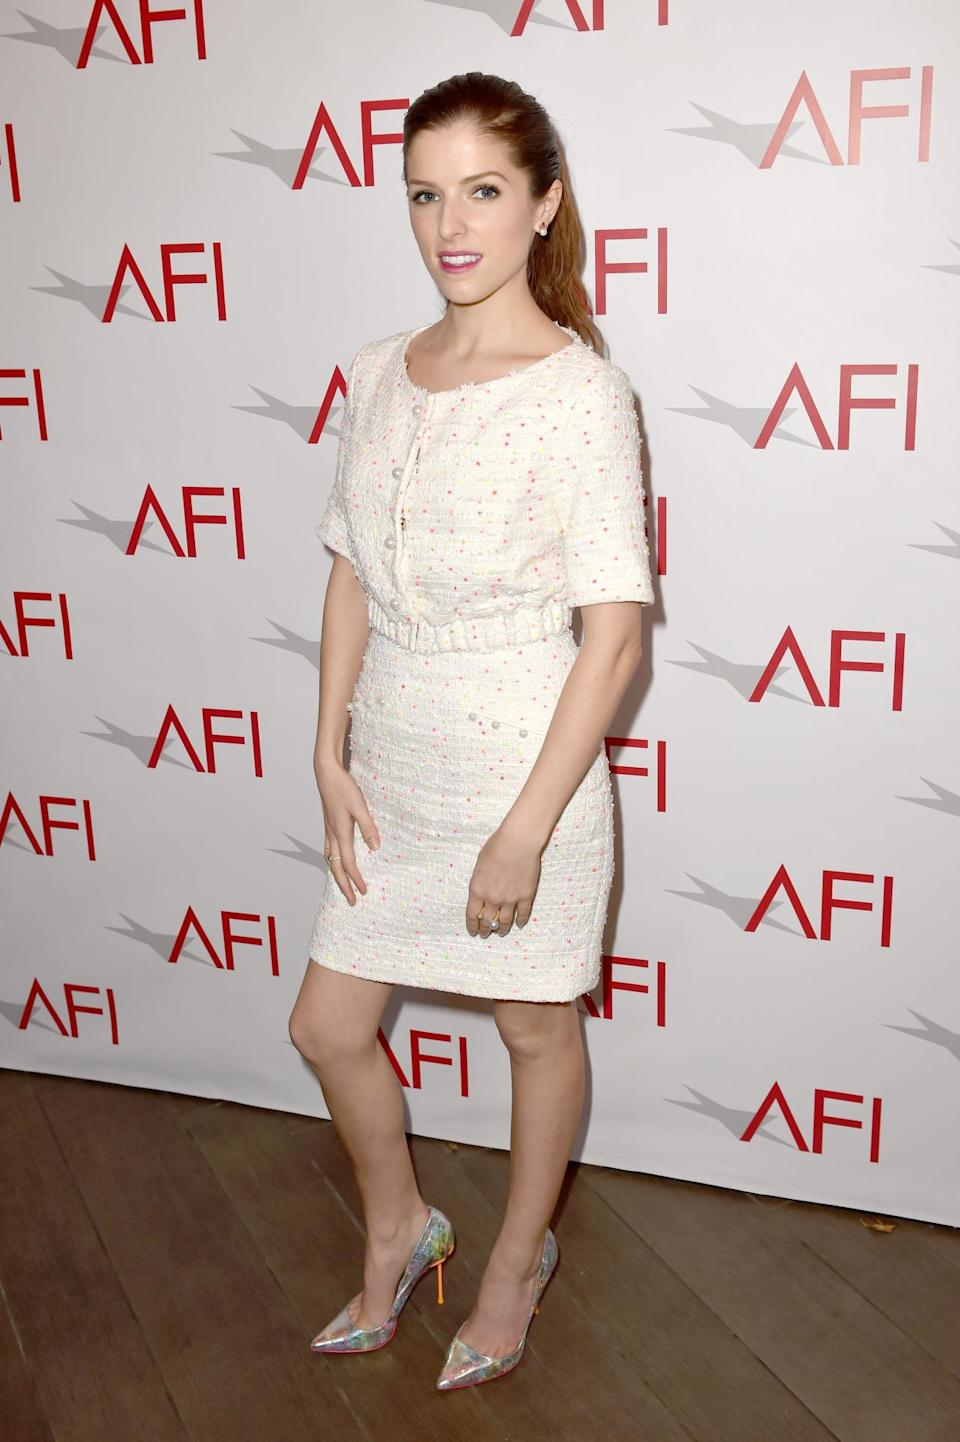 Anna Kendrick paired a lady-like bouclé mini dress with metallic shining heels to make her look a little more fun and young.